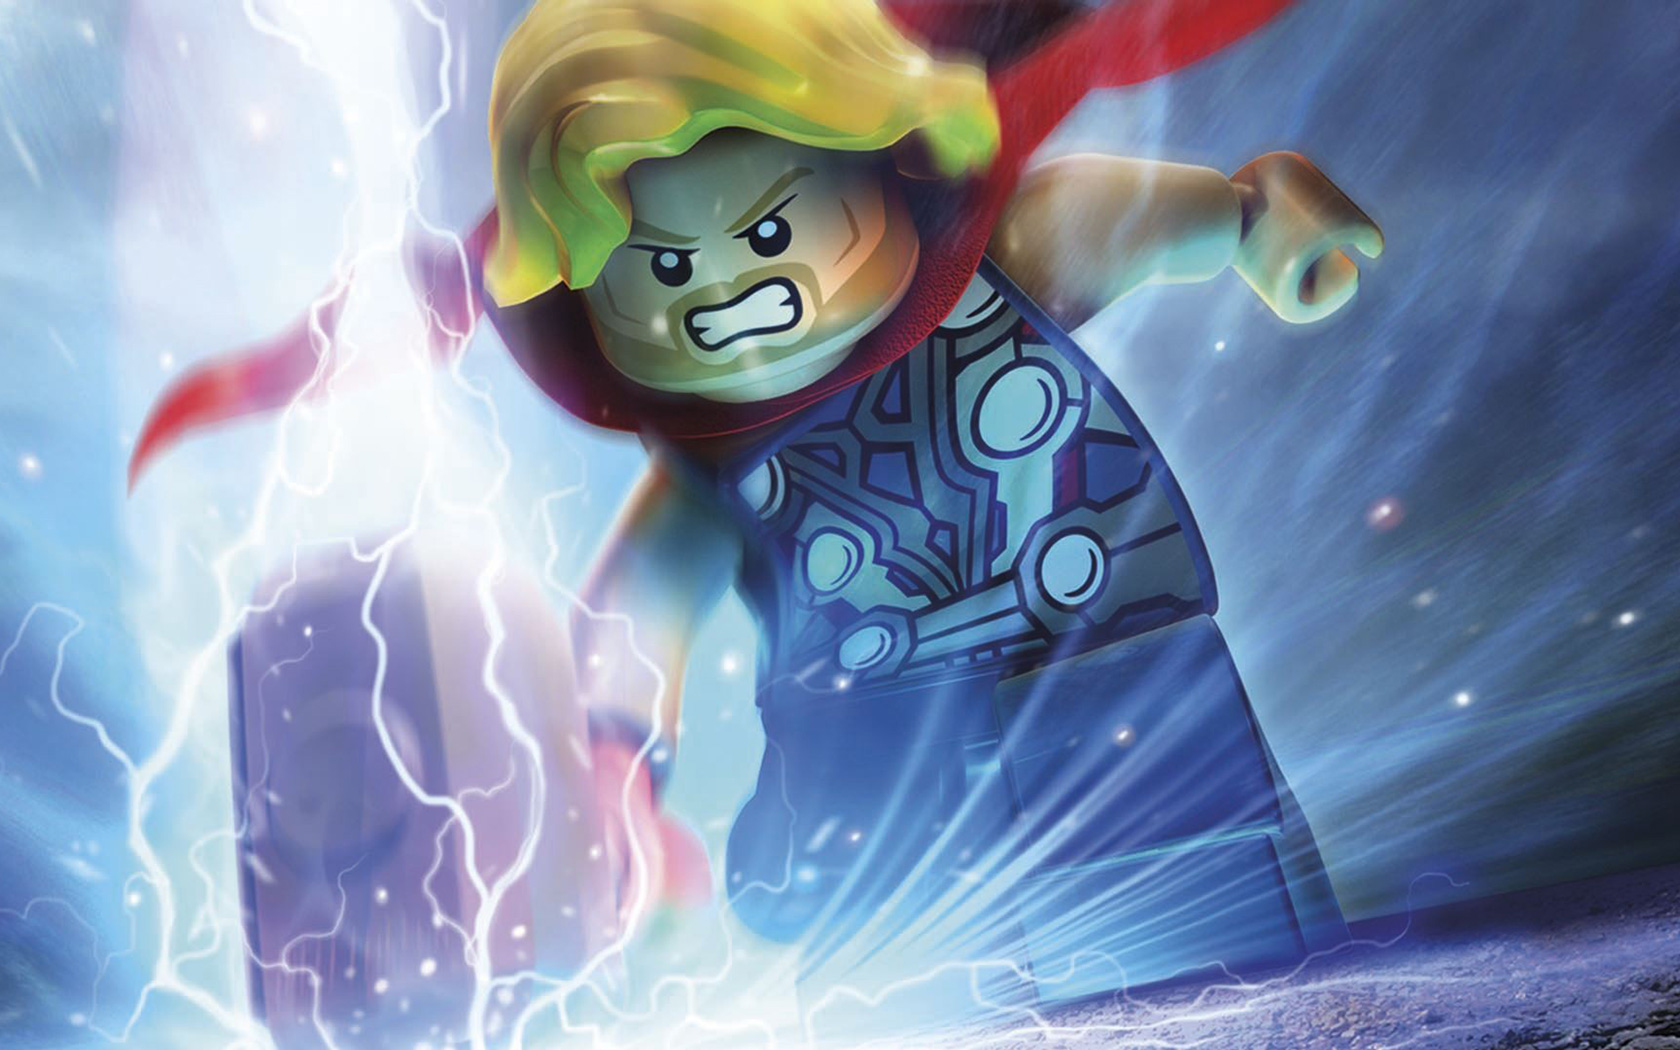 Free Lego Marvel Super Heroes Wallpaper in 1680x1050